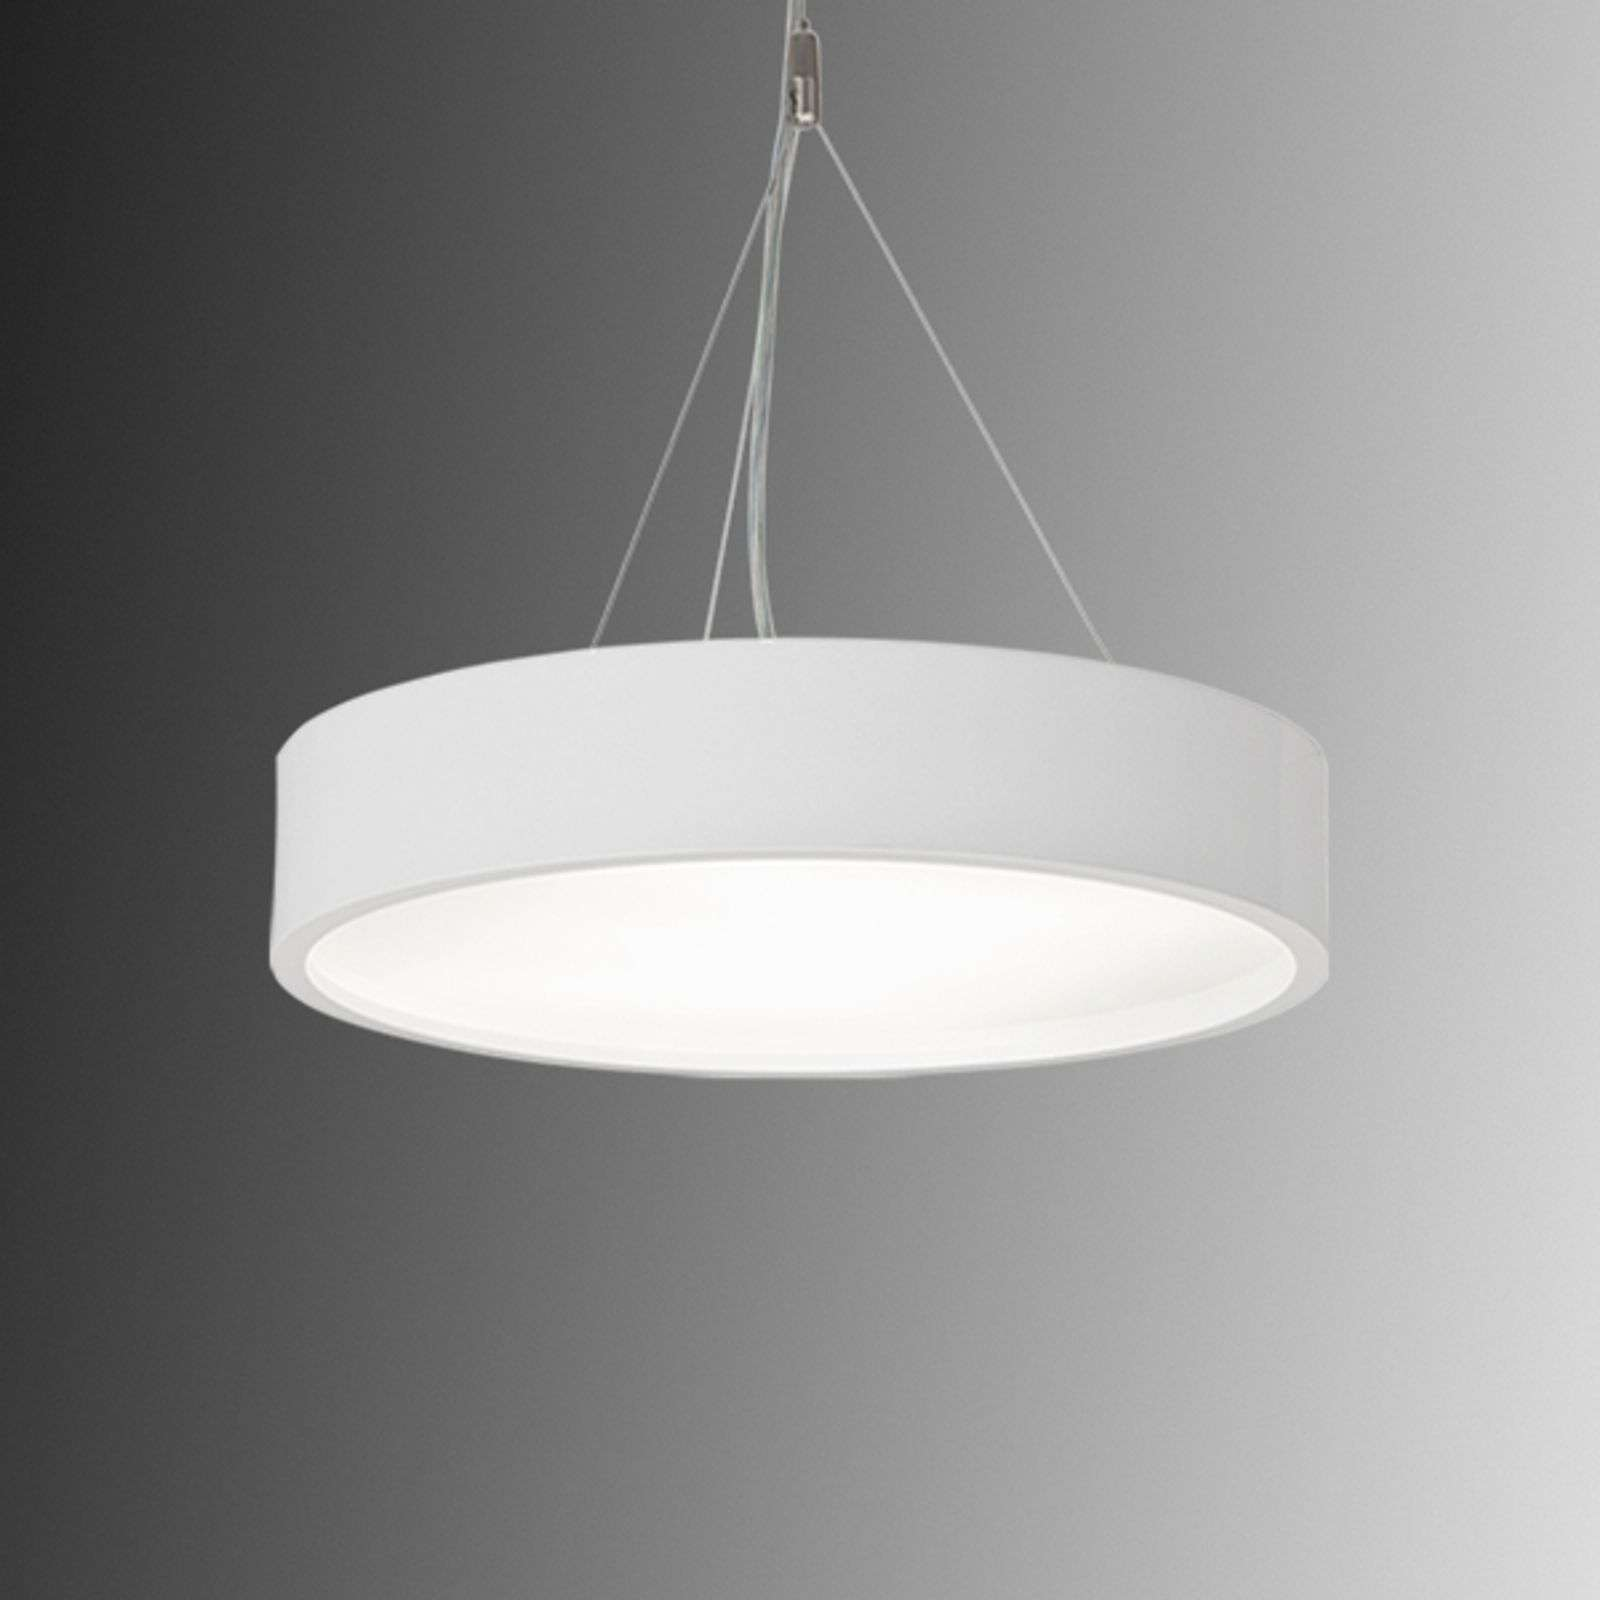 Suspension LED Modul P445 en blanc